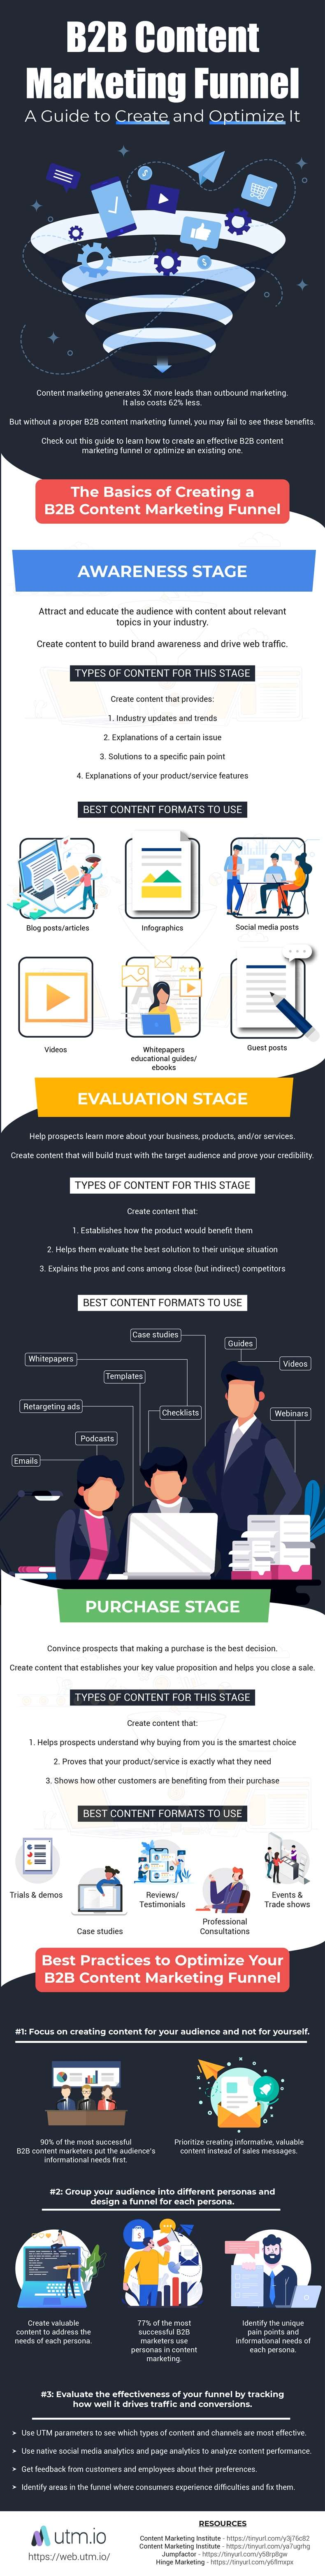 B2B Content Marketing Funnels infographic